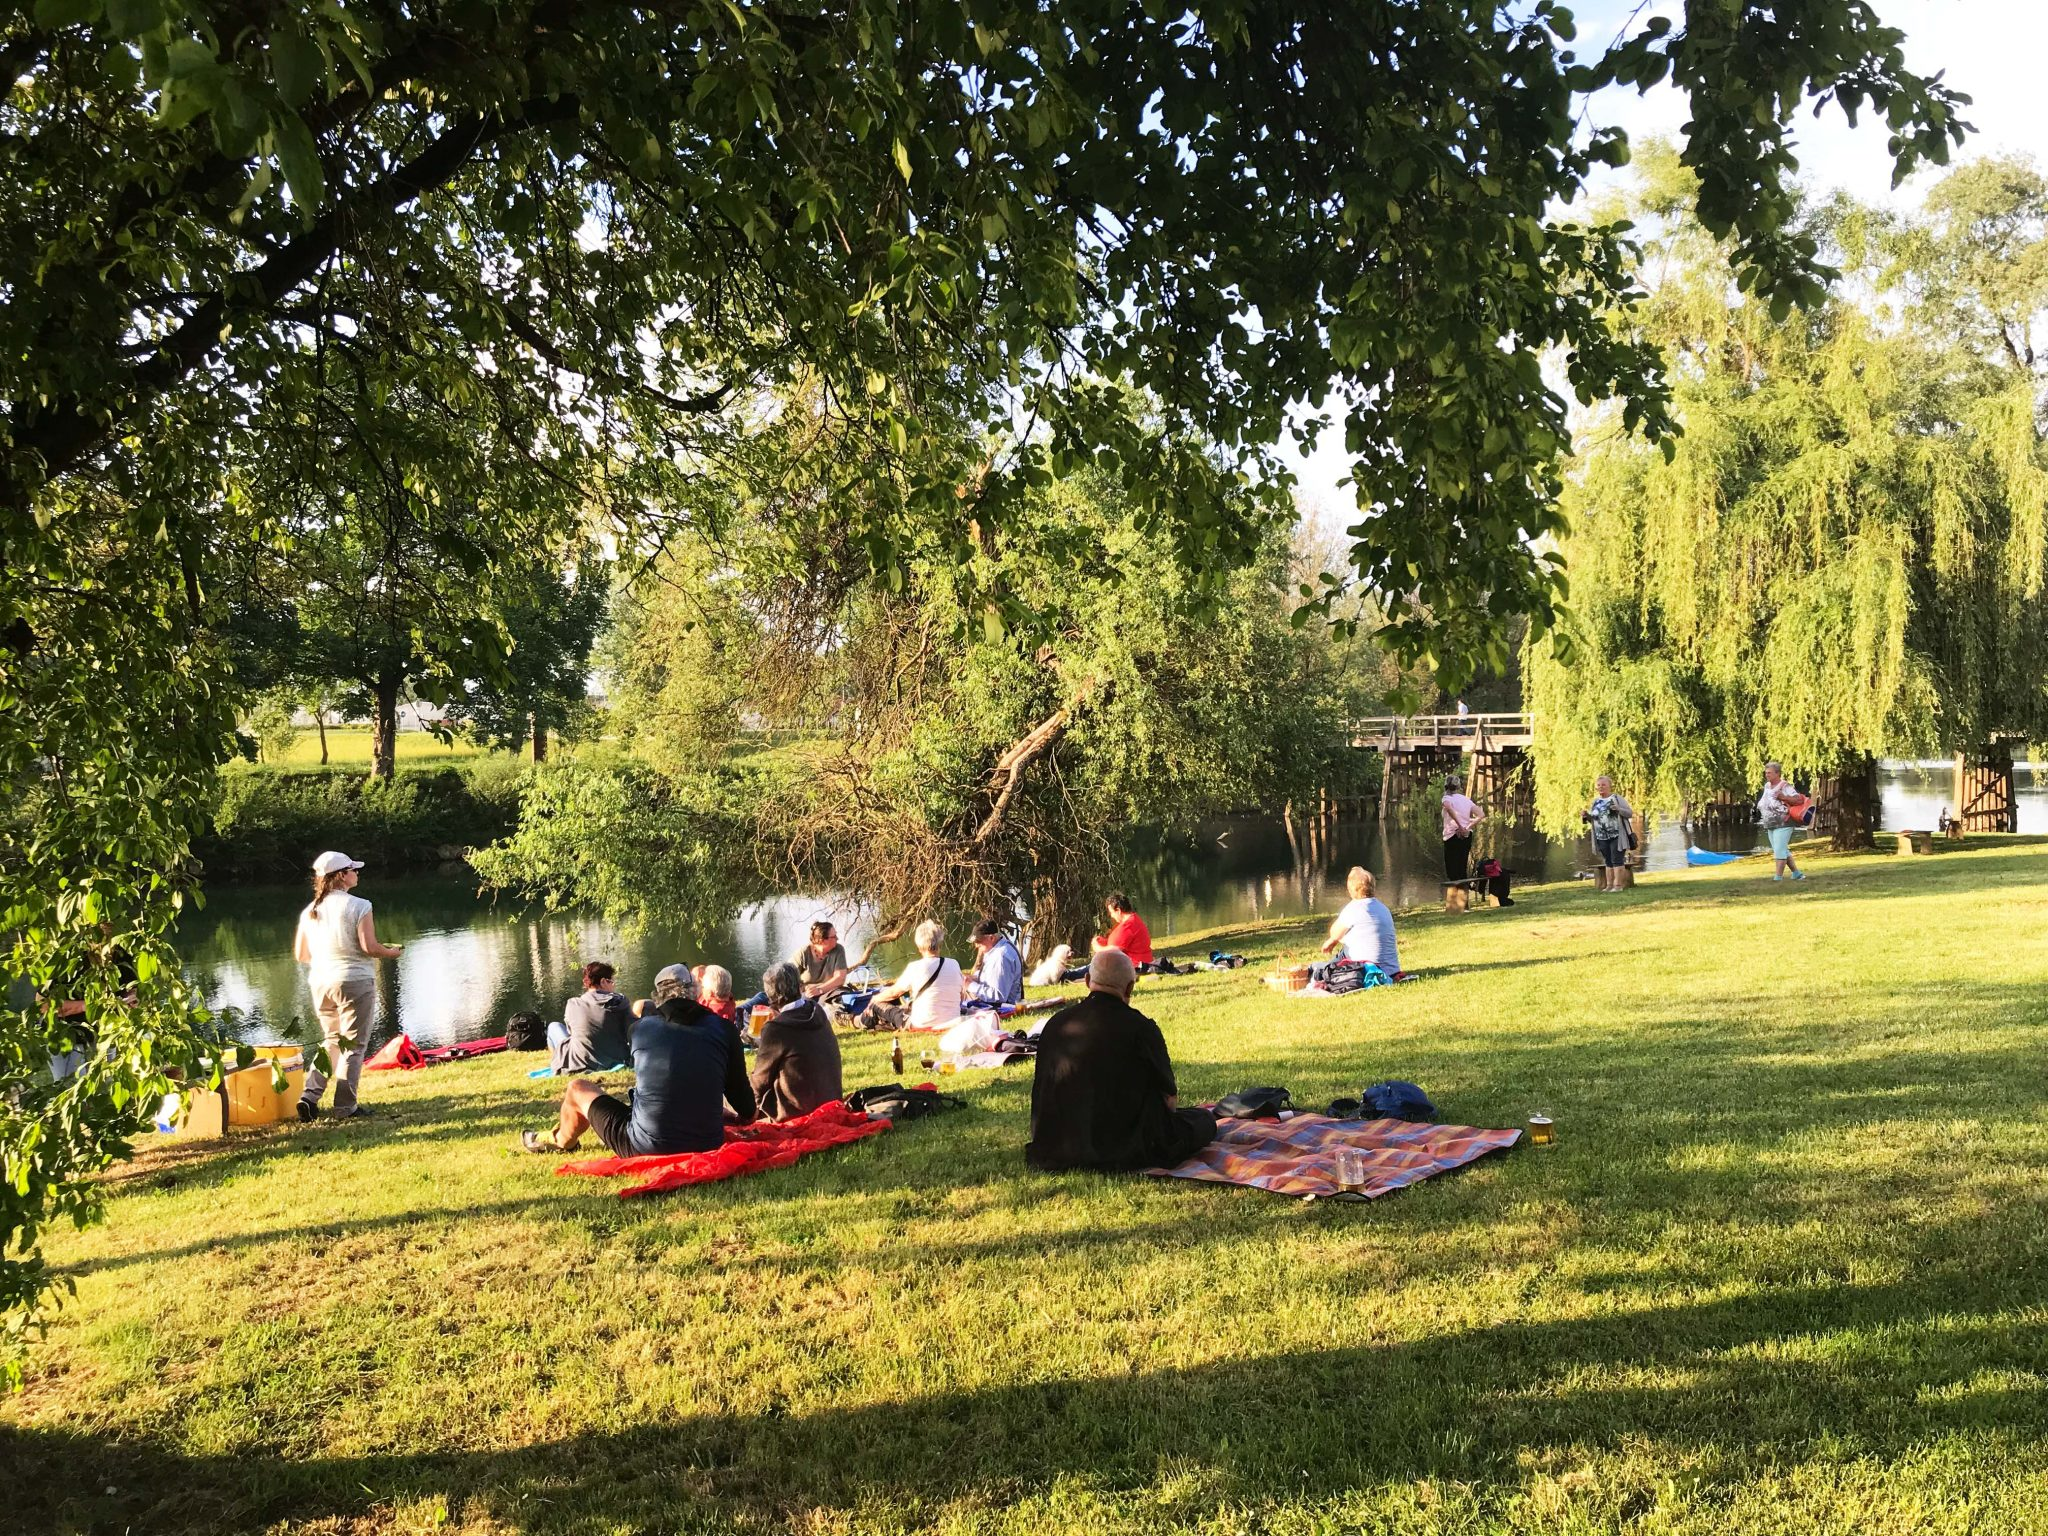 Picknick am Fluss